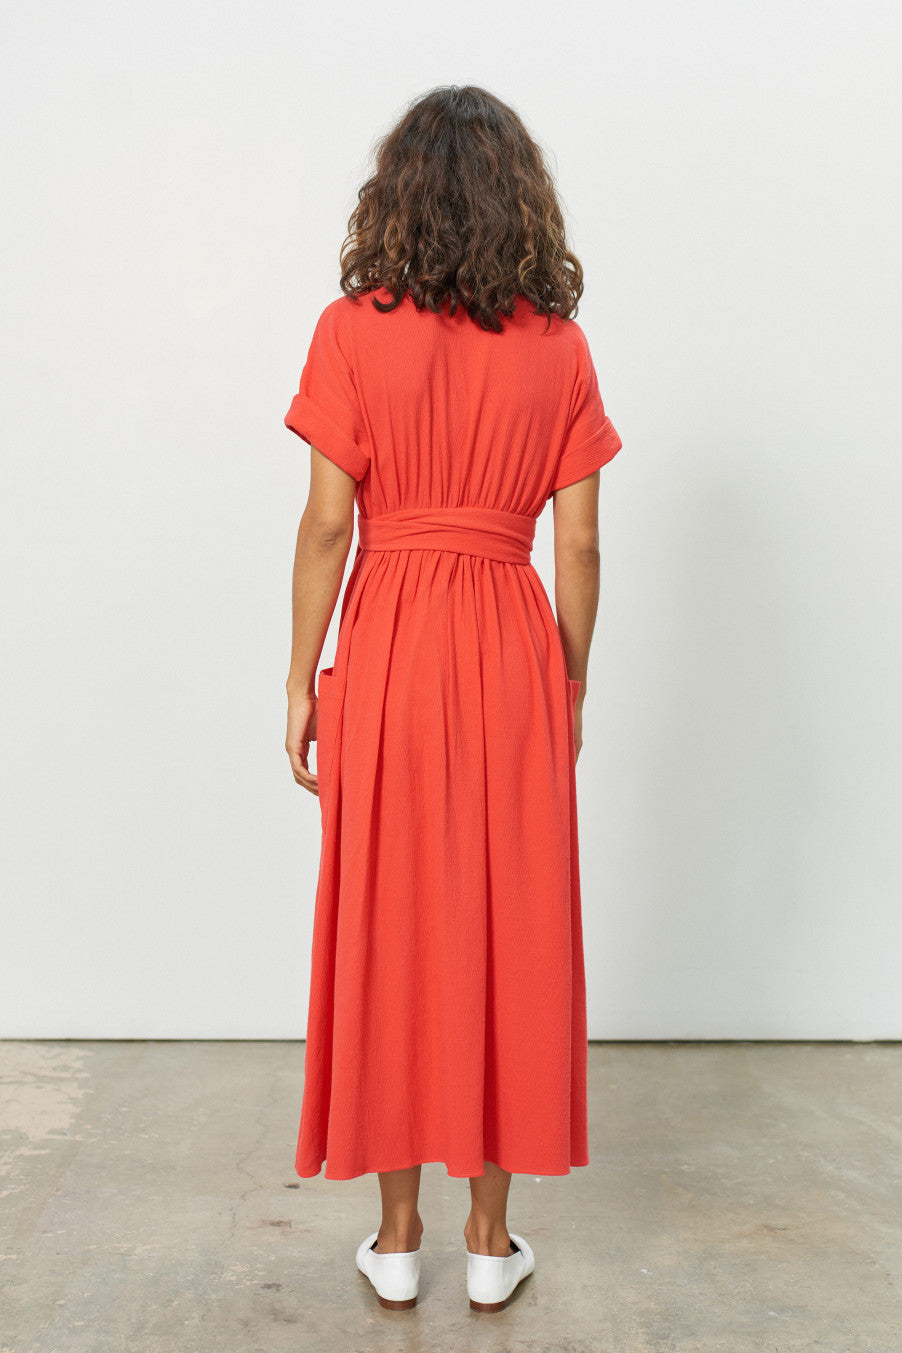 Mara Hoffman - Ingrid Dress